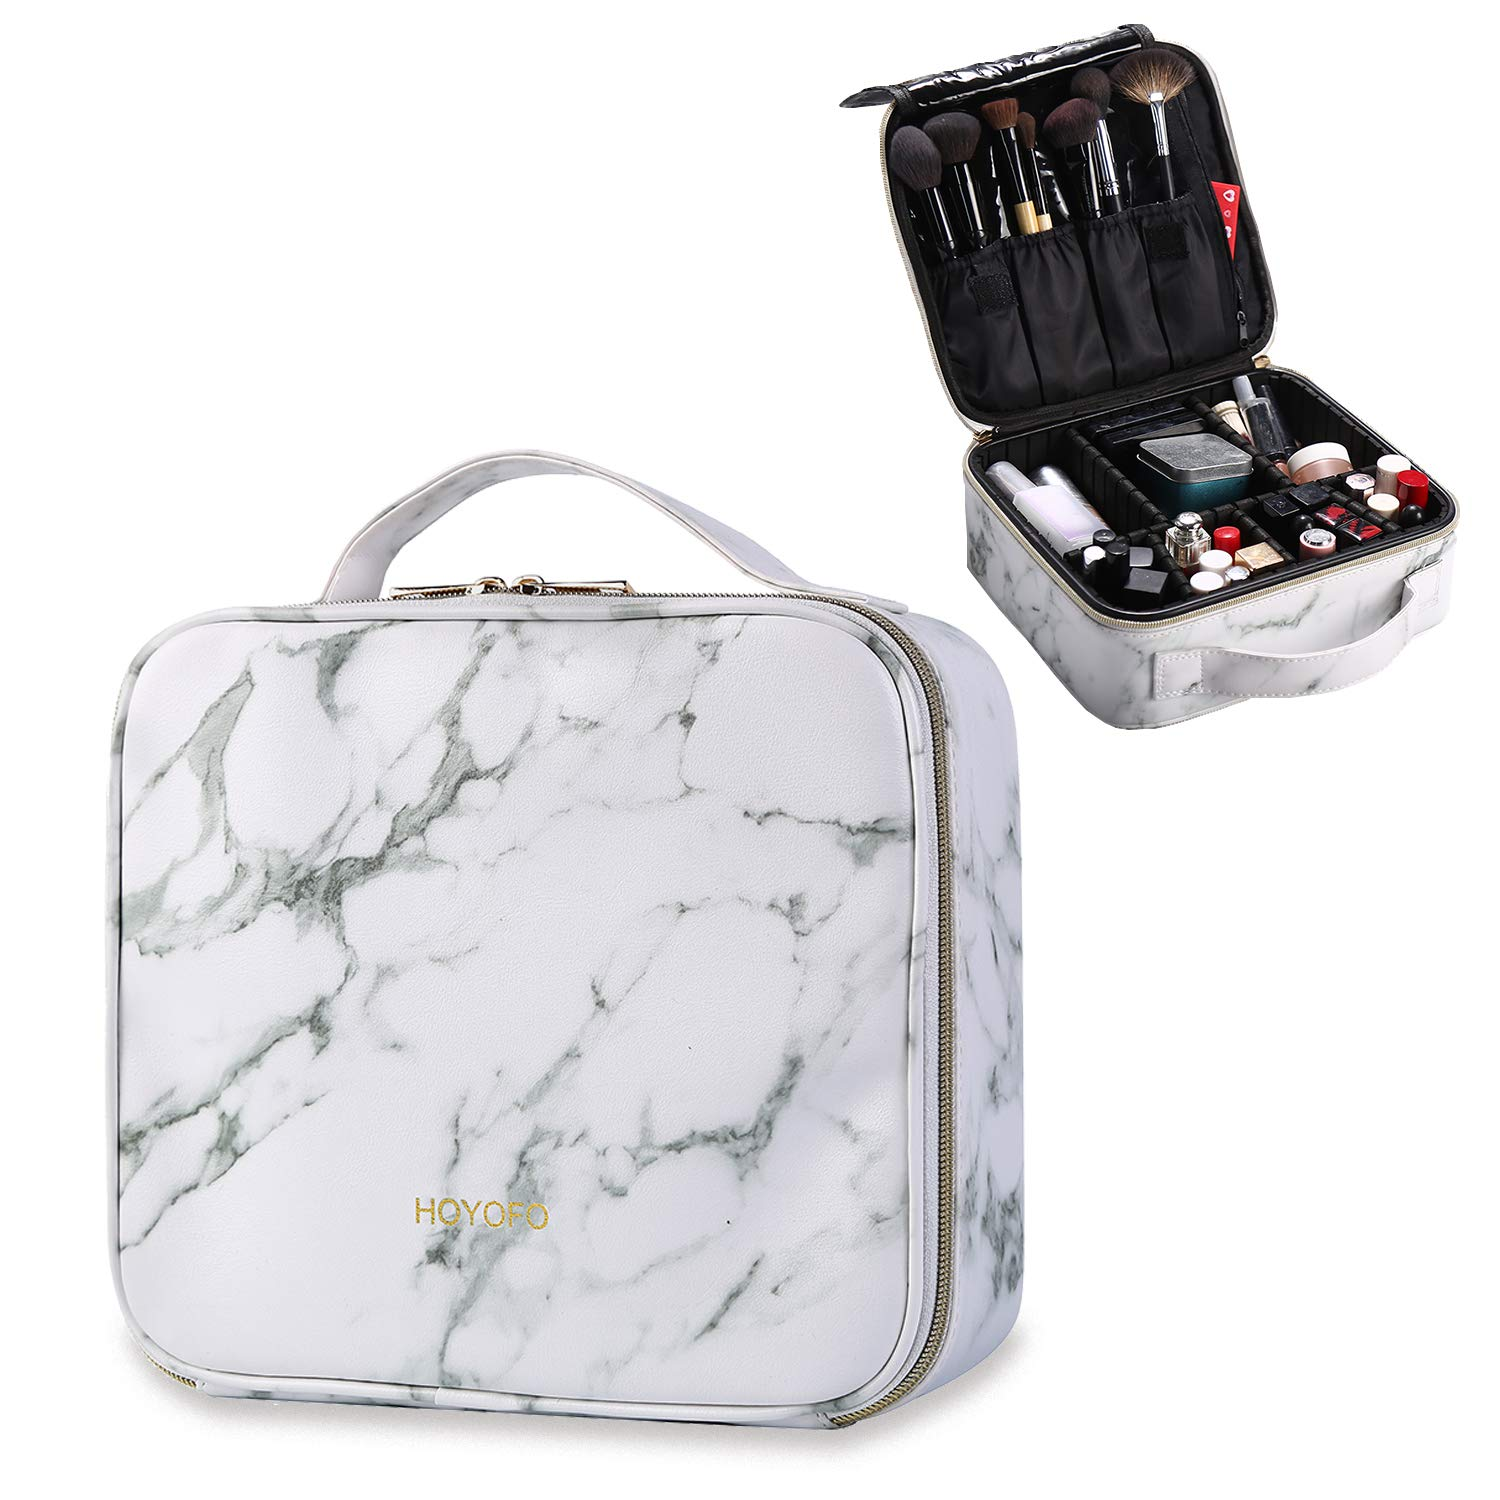 HOYOFO Travel Makeup Train Case with Adjustable Dividers White Marble Makeup Organizer Bag Portable Cosmetic Storage Cases with Brush Holders